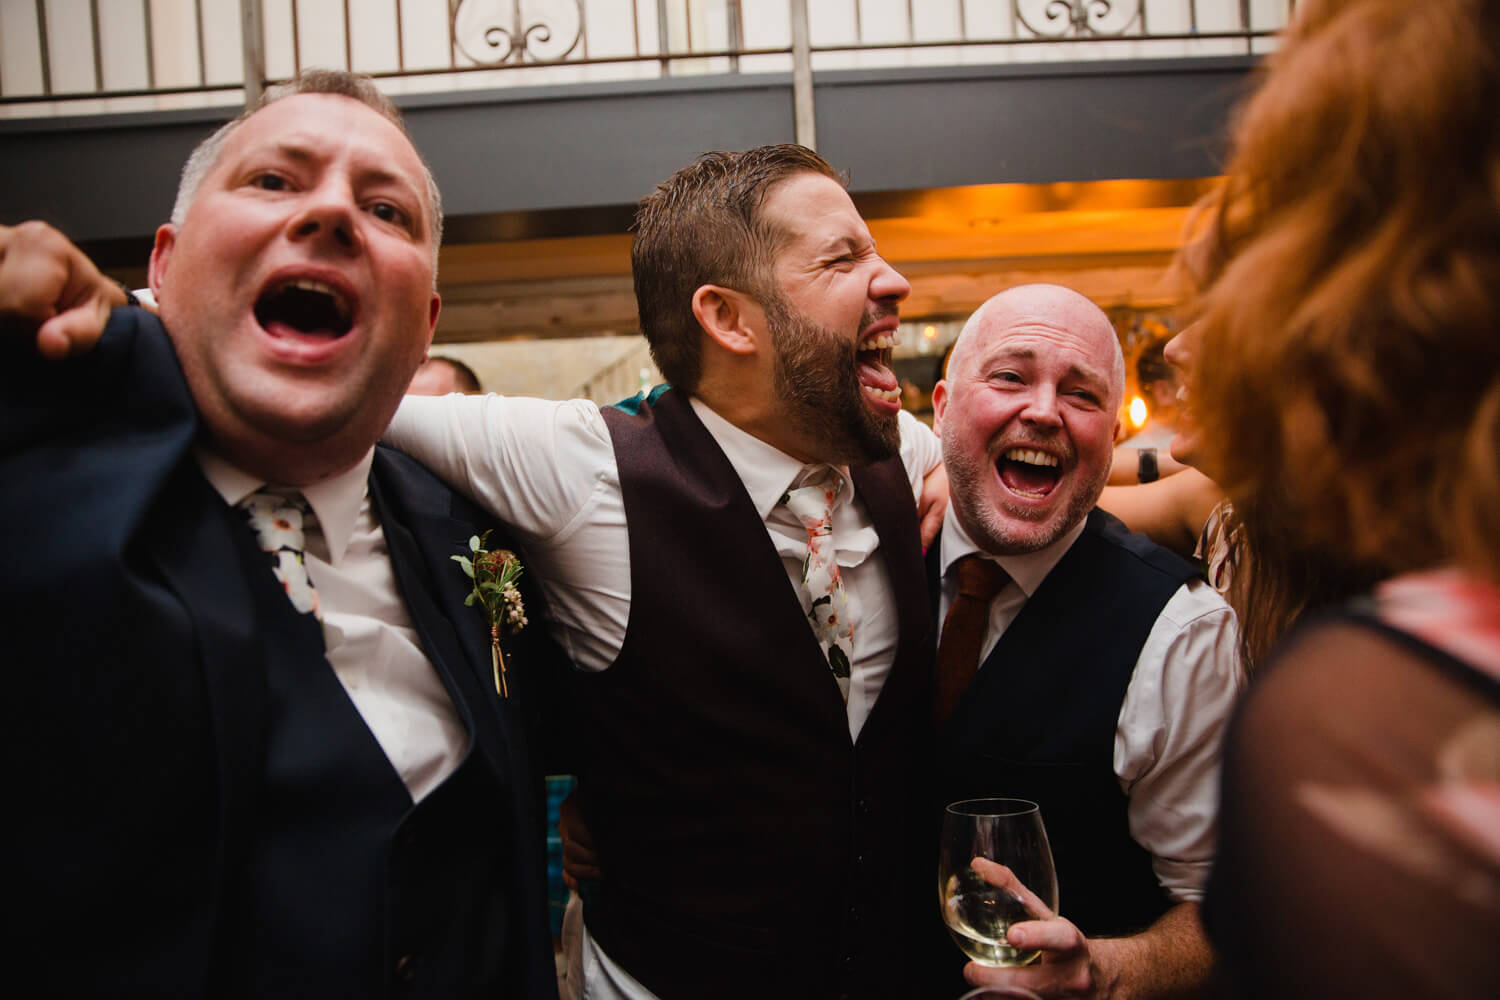 groom partying with groomsmen and friends at end of the night